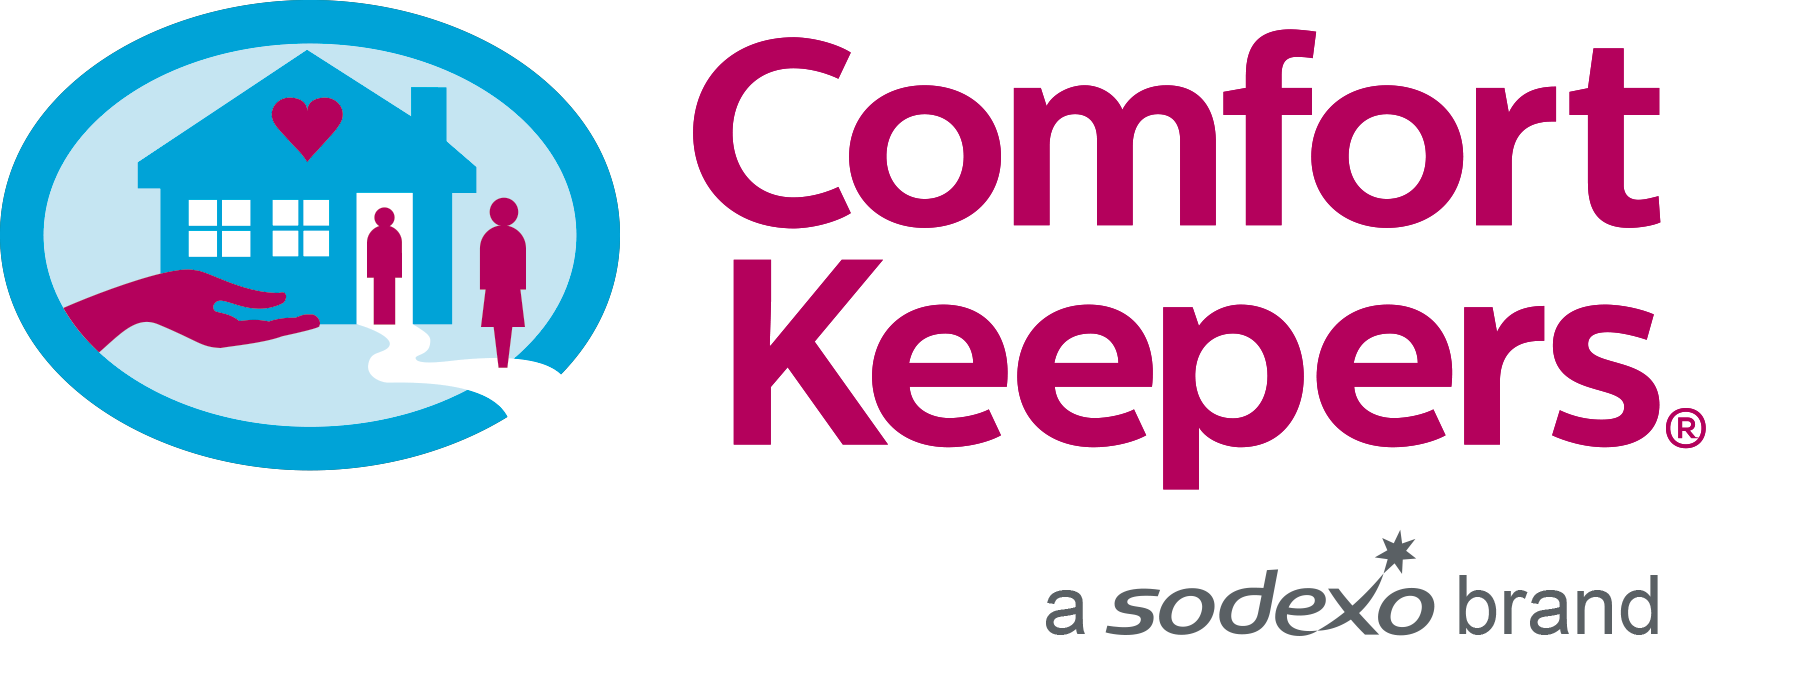 Comfort Keepers Review 2016